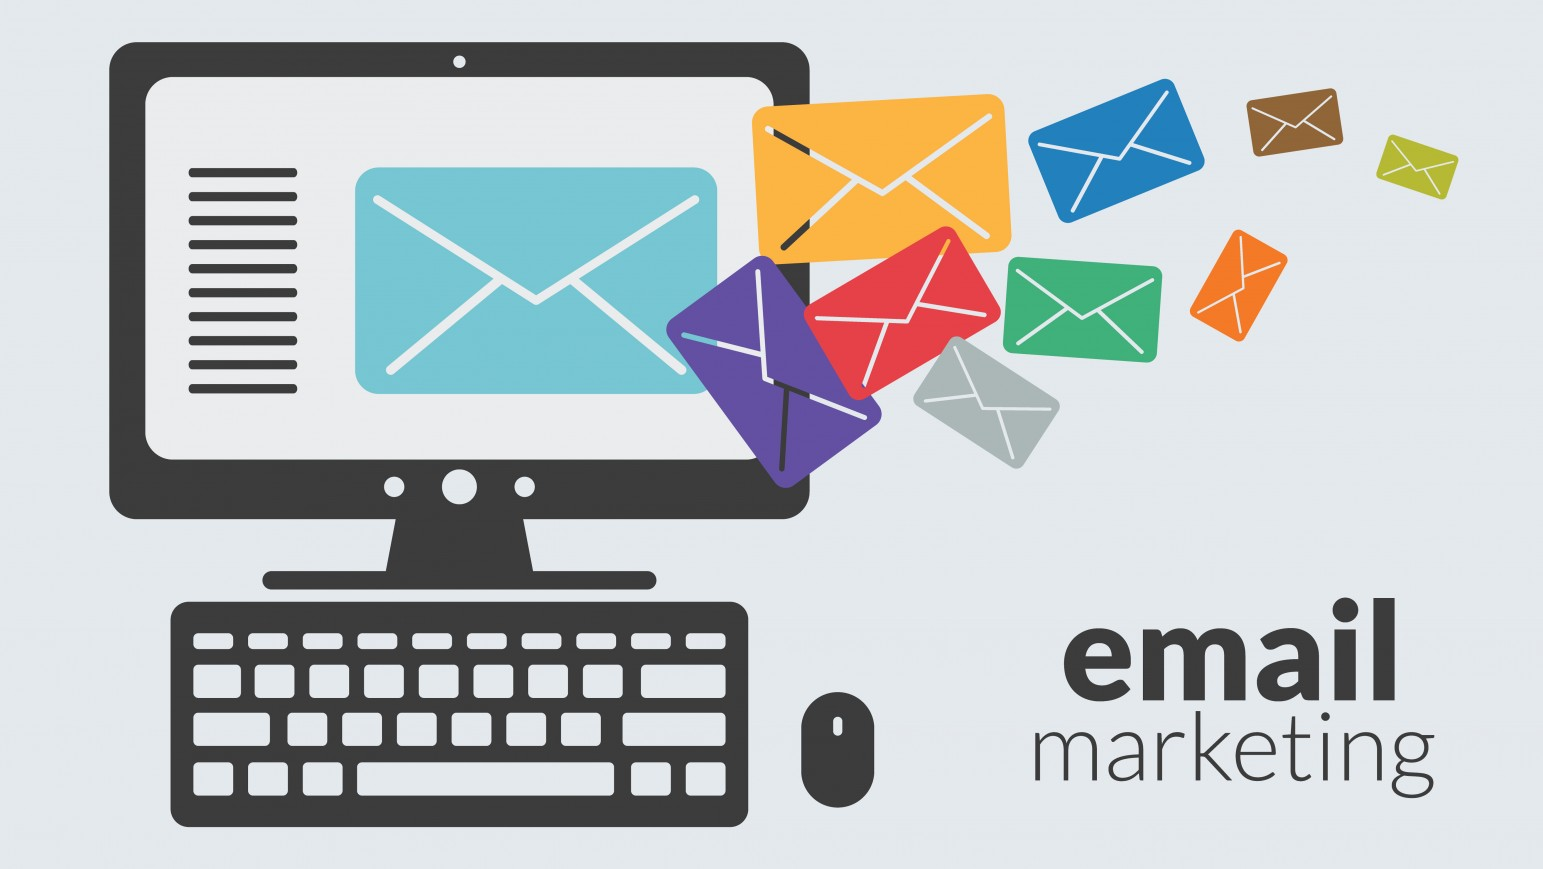 email-marketing-khong-bi-danh-gia-la-spam